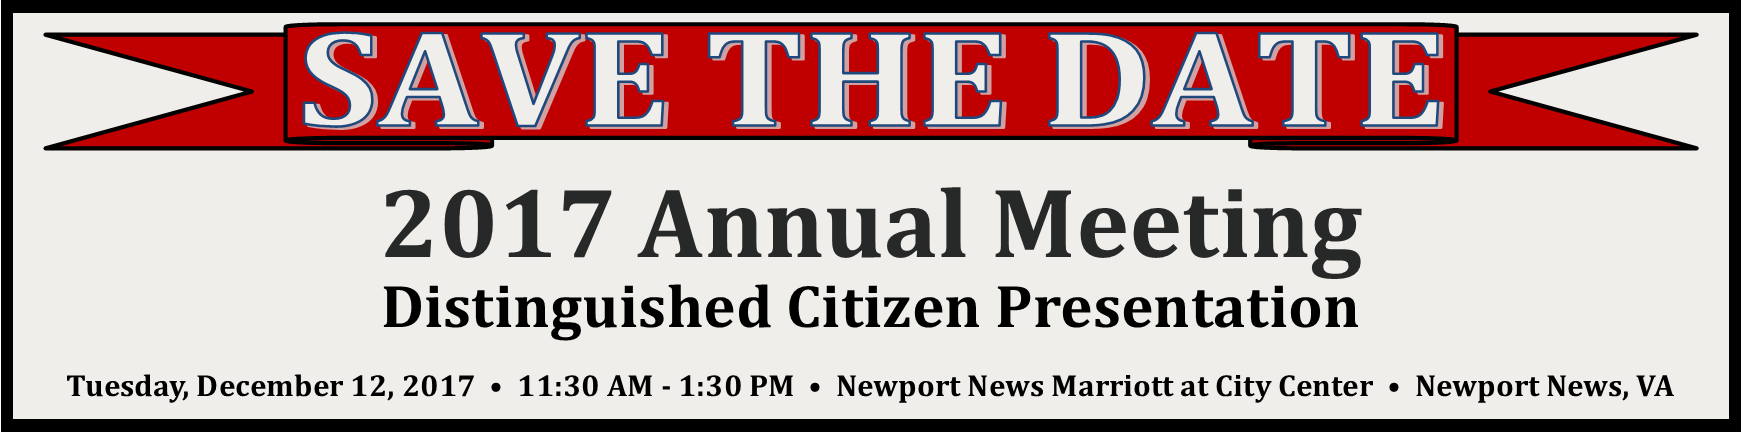 2017-1212-Annual-Meeting-Banner.png